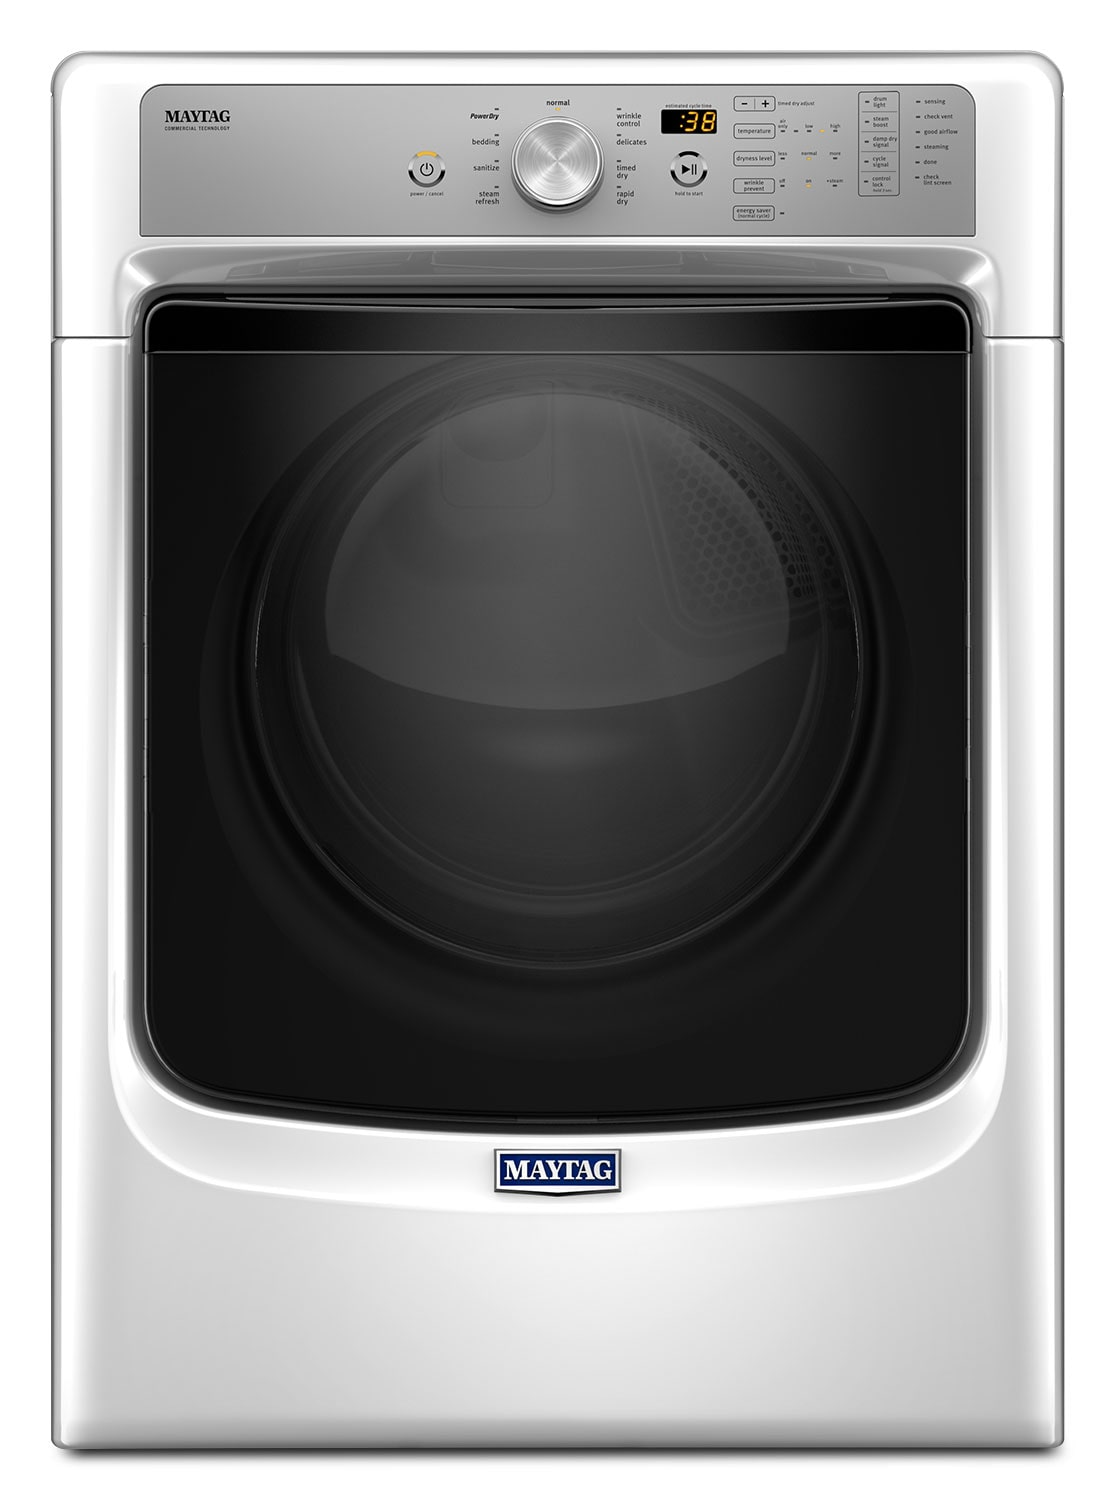 Washers and Dryers - Maytag 8.5 Cu. Ft. Gas Dryer – MGD5500FW